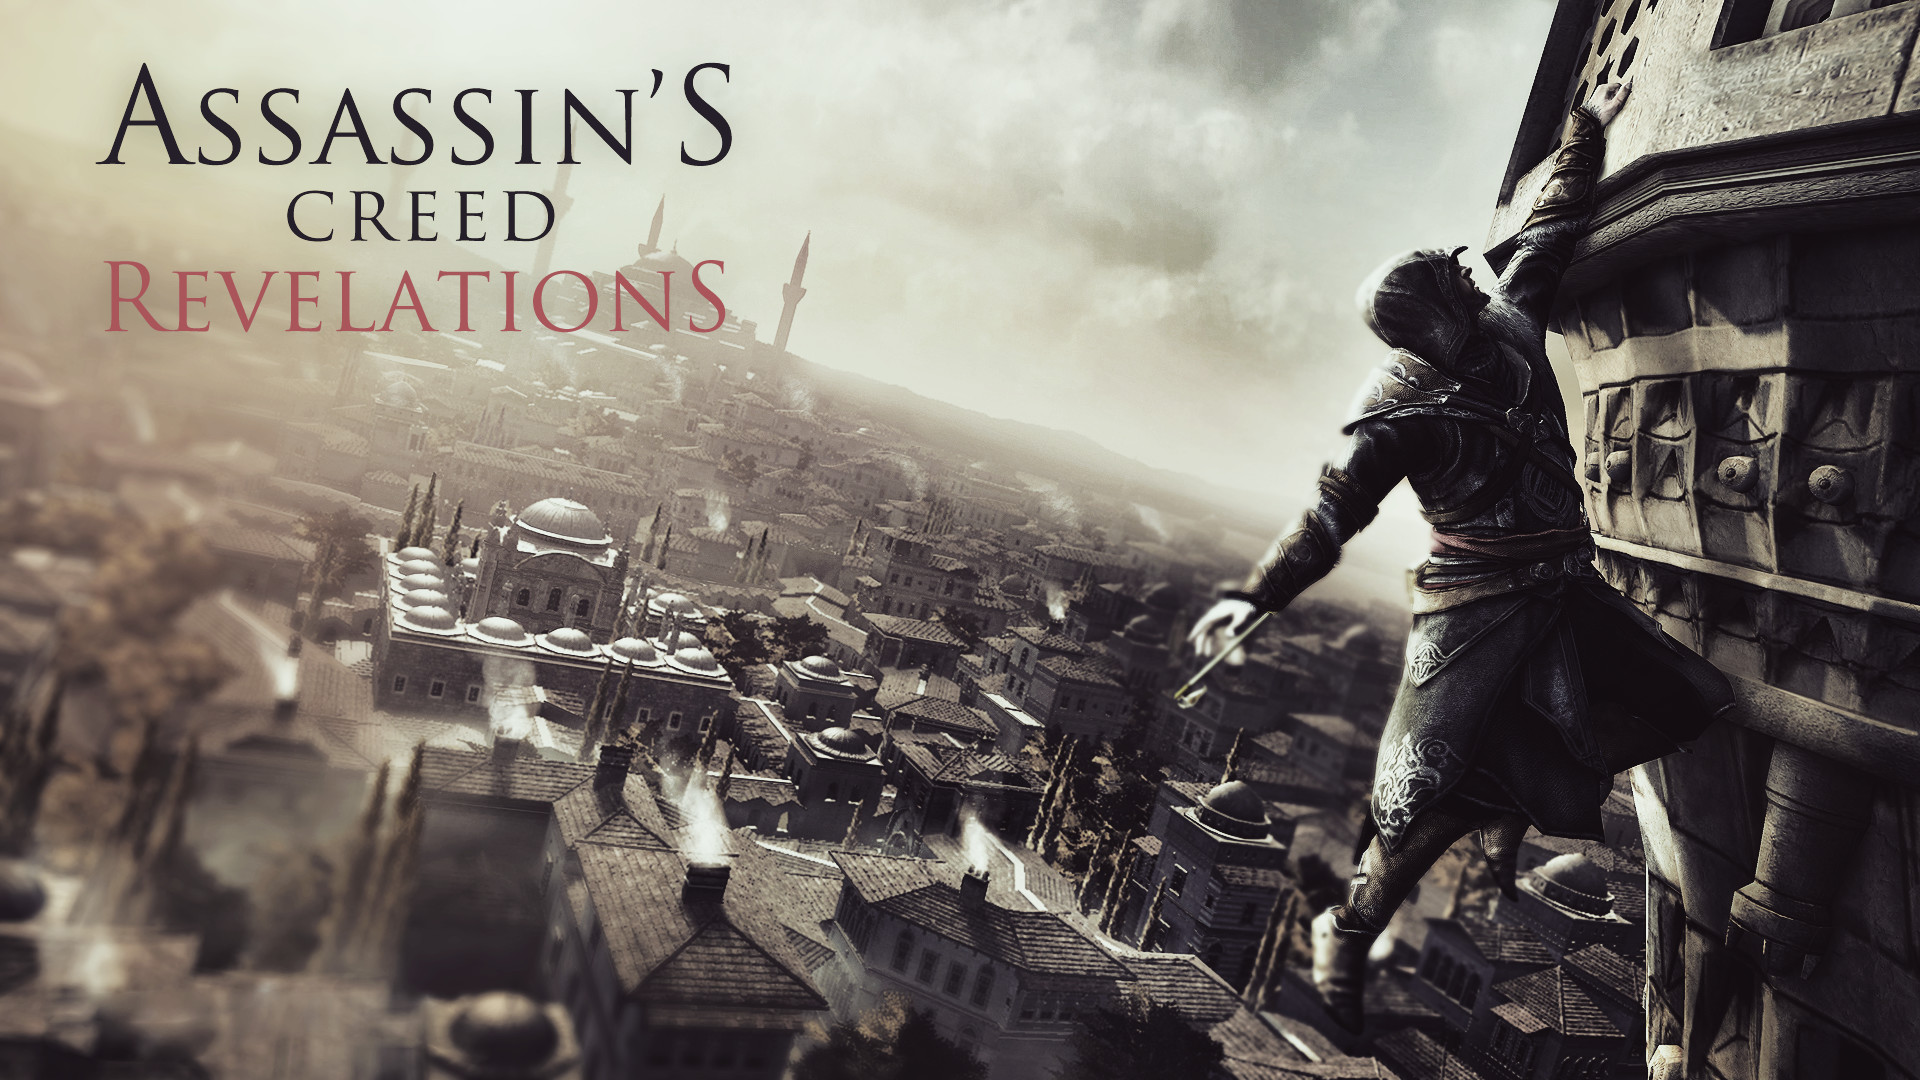 1920x1080 Assassins Creed 2 Brotherhood Revelations Video Games